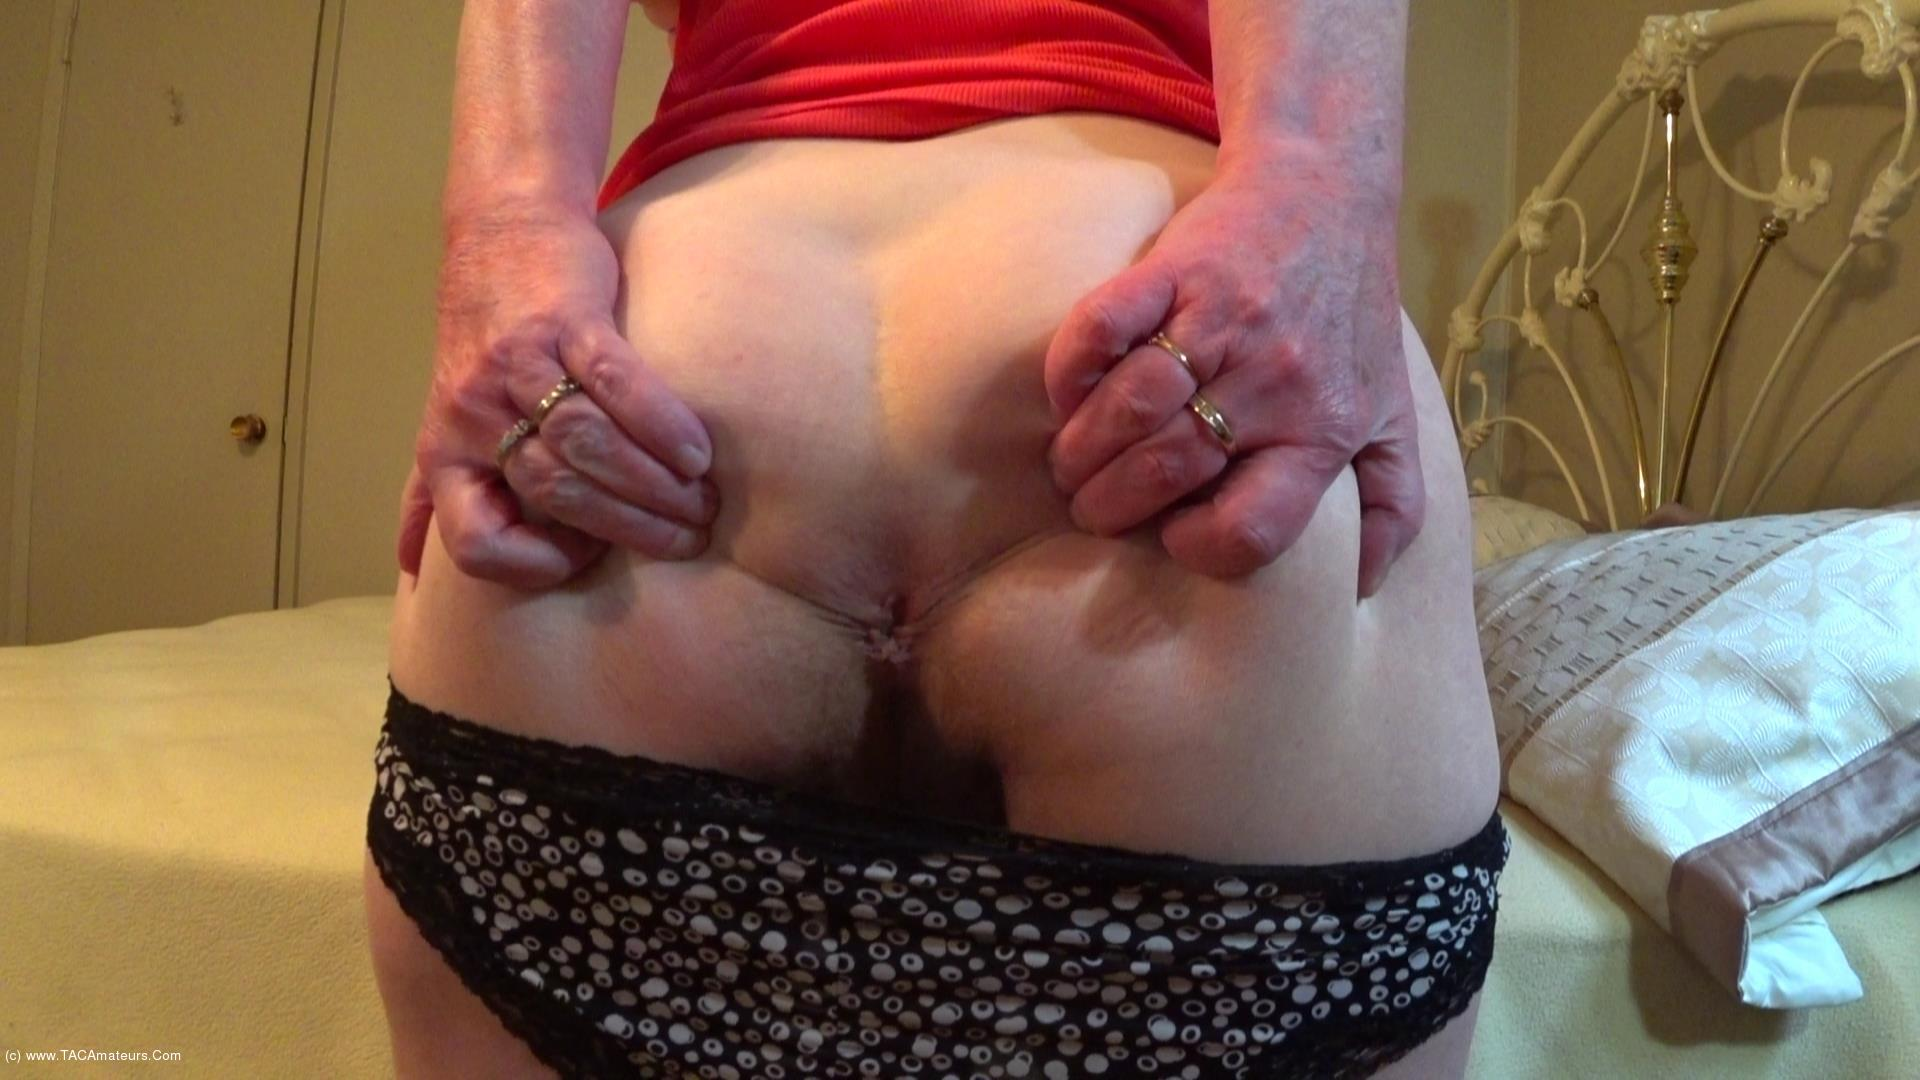 CougarBabeJolee - Time To Worship My Sweet Arse scene 2